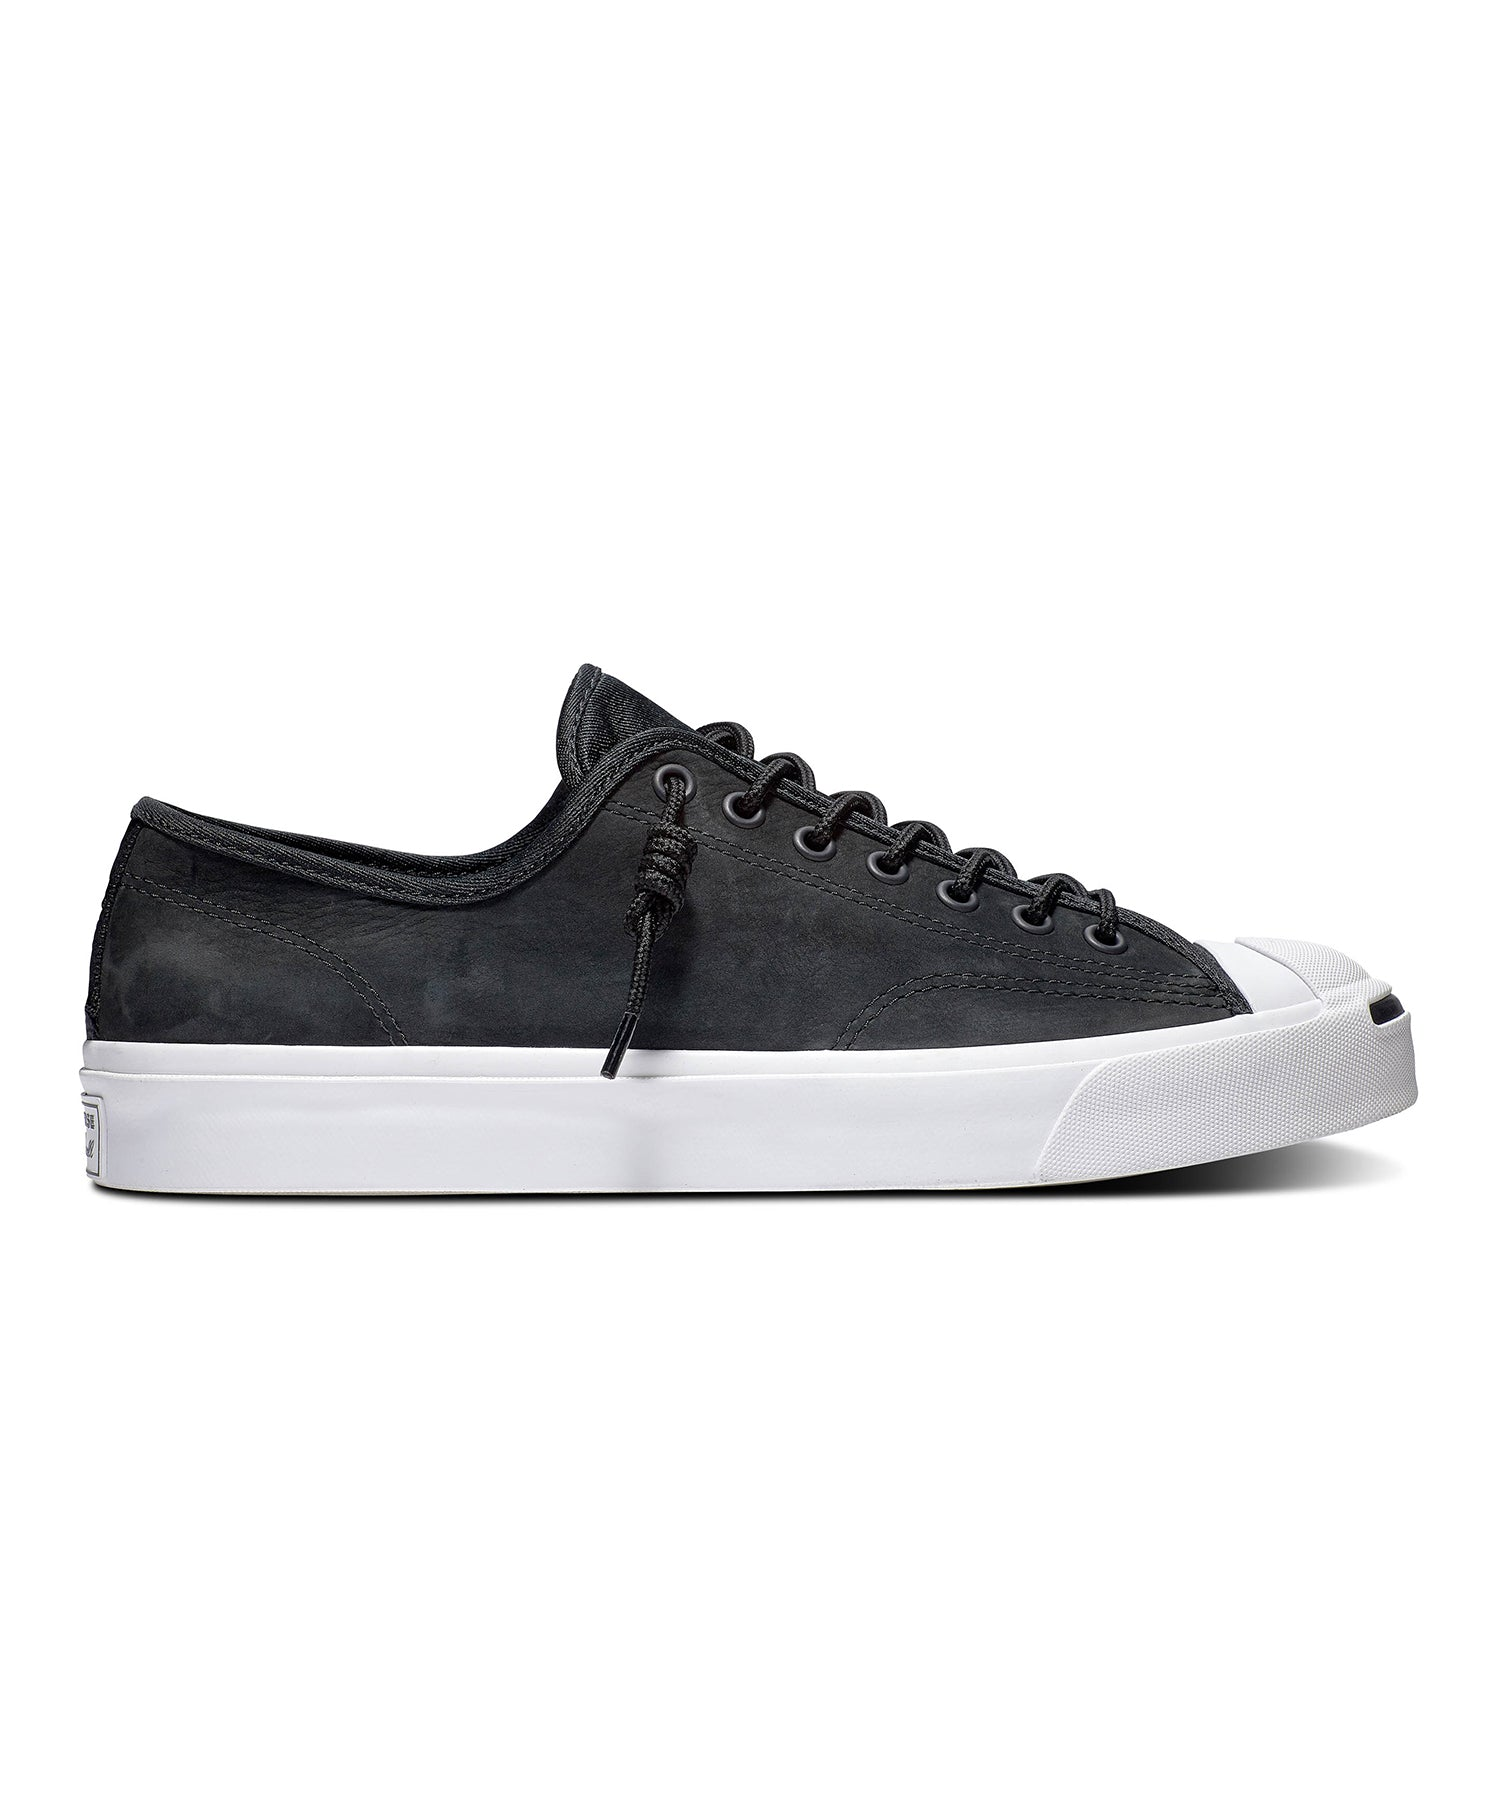 Jack Purcell Nubuck Low Top in Black